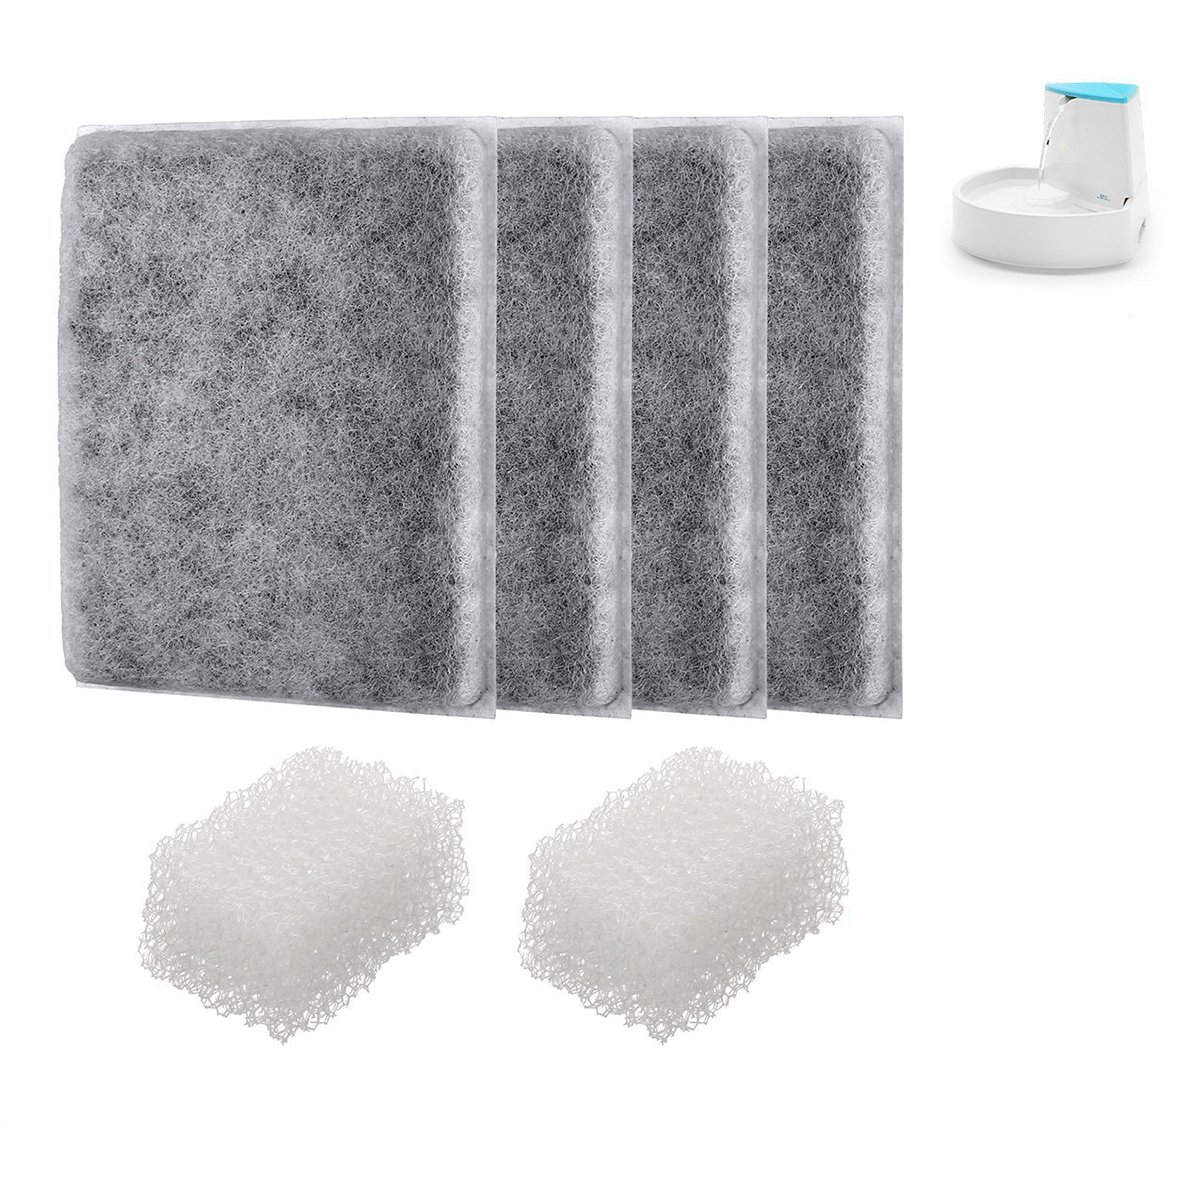 isYoung 4 Pack Corner Pet Fountain Premium Activated Carbon Filters Pet Fountain Replacement Filters